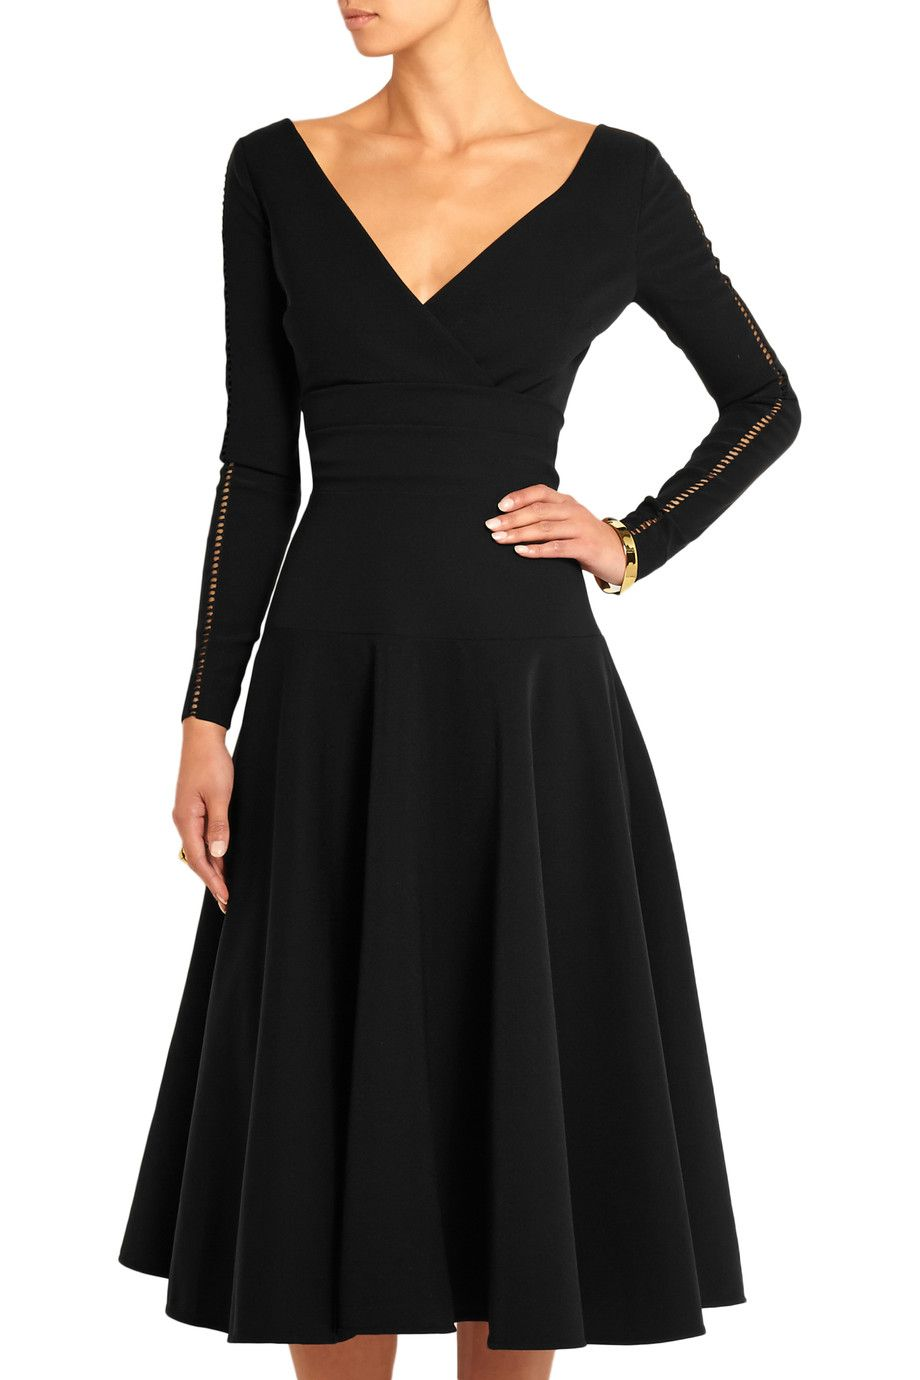 Shop on-sale Preen by Thornton Bregazzi Martina pointelle-trimmed stretch-crepe dress. Browse other discount designer Dresses & more on The Most Fashionable Fashion Outlet, THE OUTNET.COM